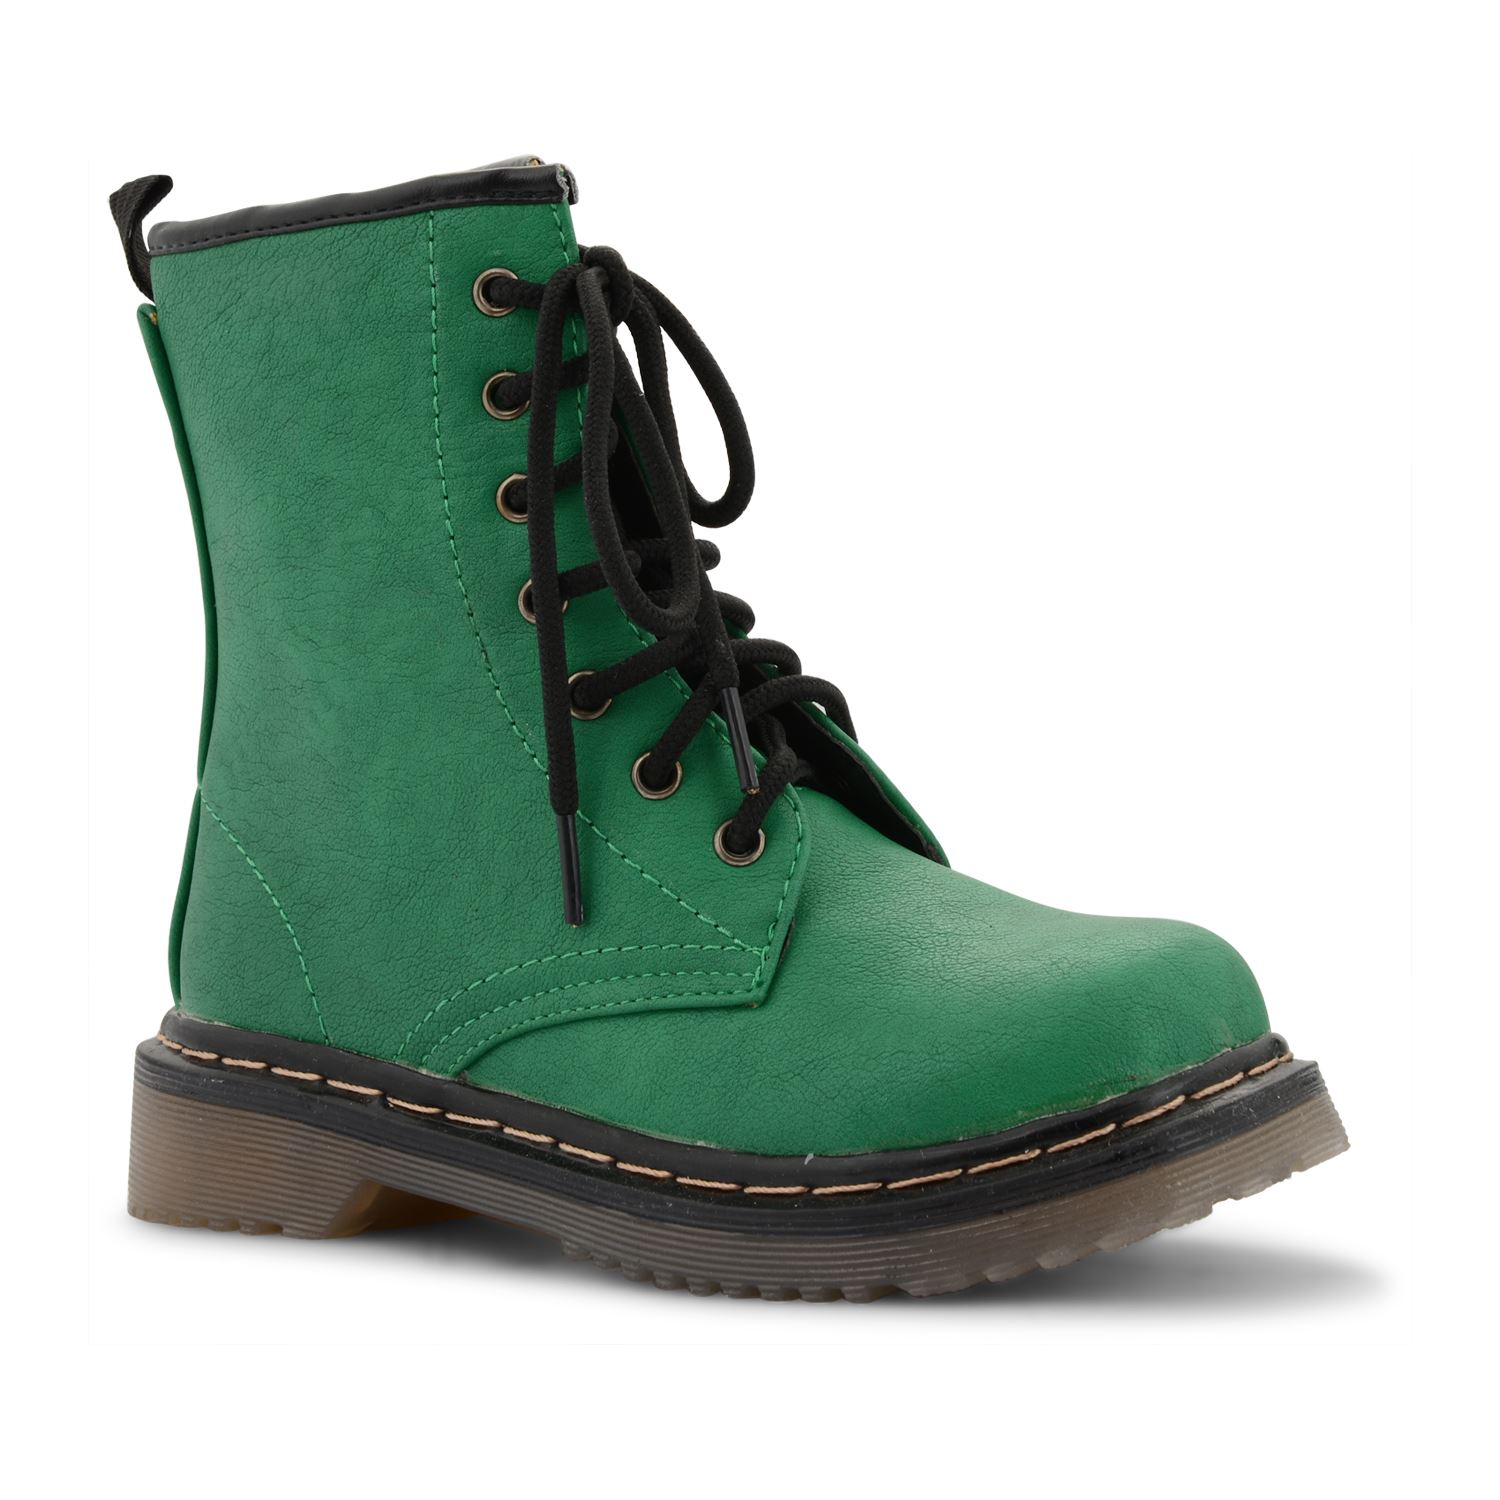 Green Combat Boots Boot Yc